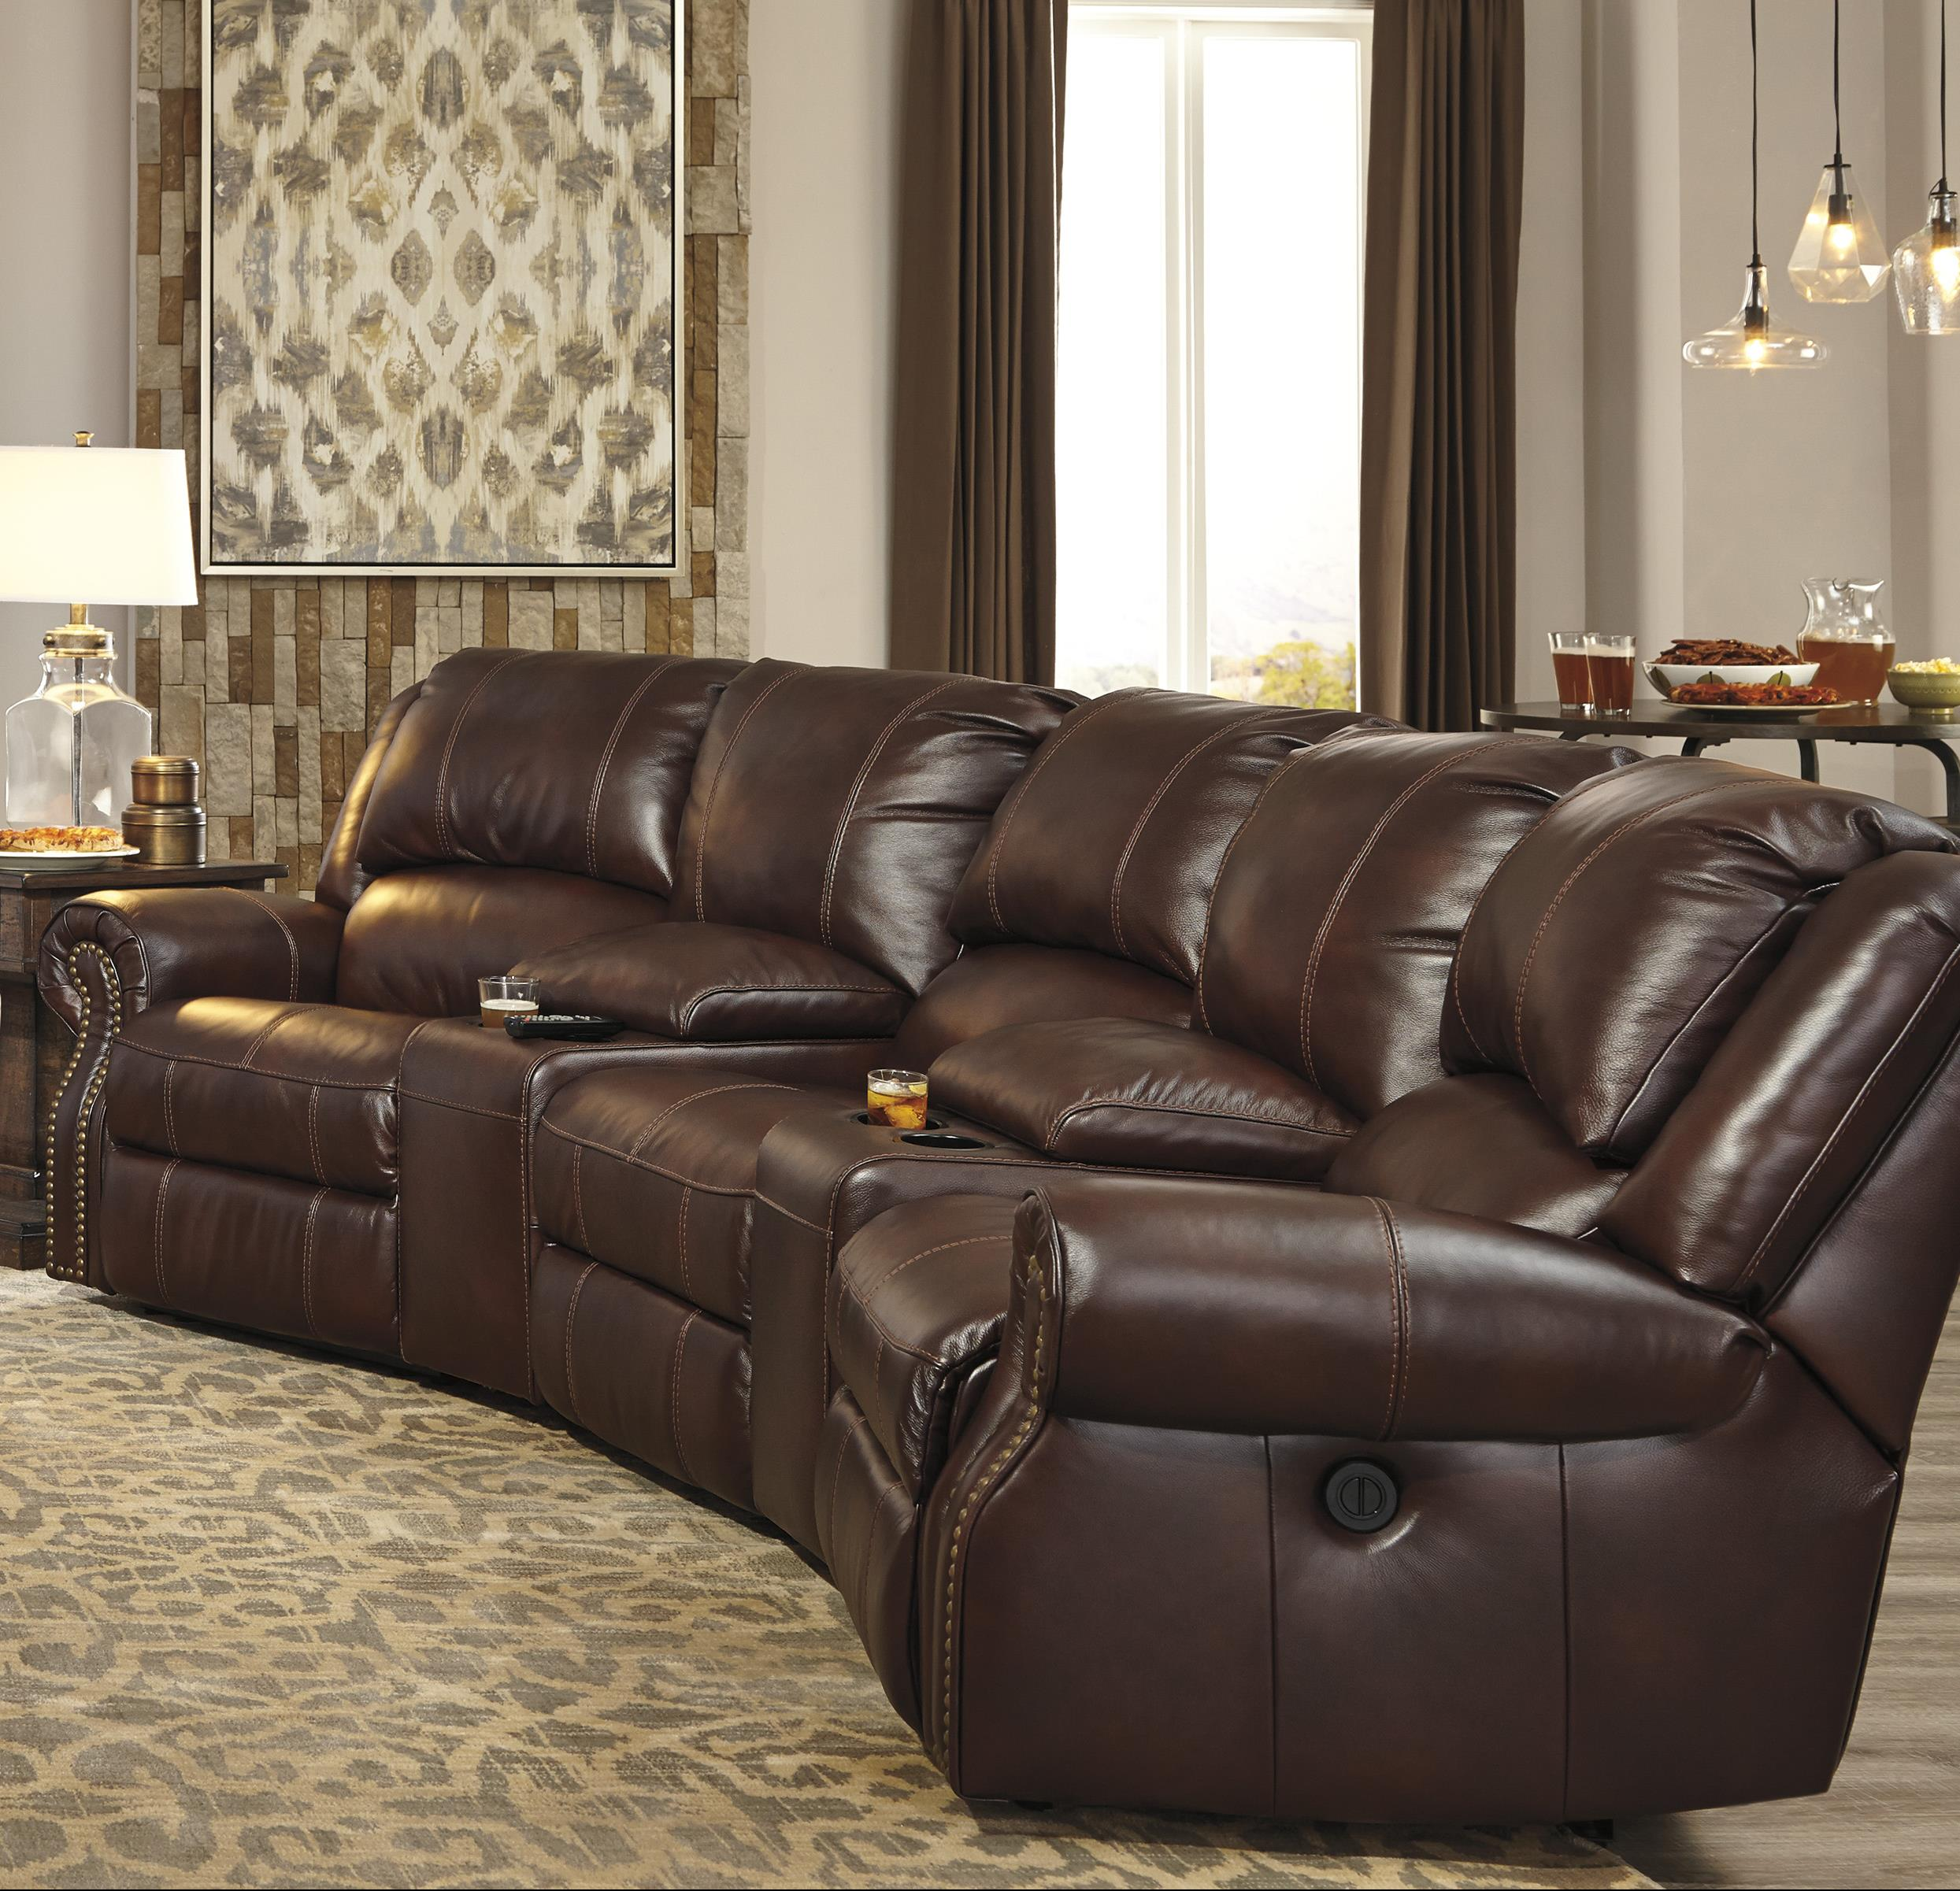 Signature Design by Ashley Collinsville 5-Piece Power Recline Theater Seating Group - Item Number: U7210058+2x27+19+62